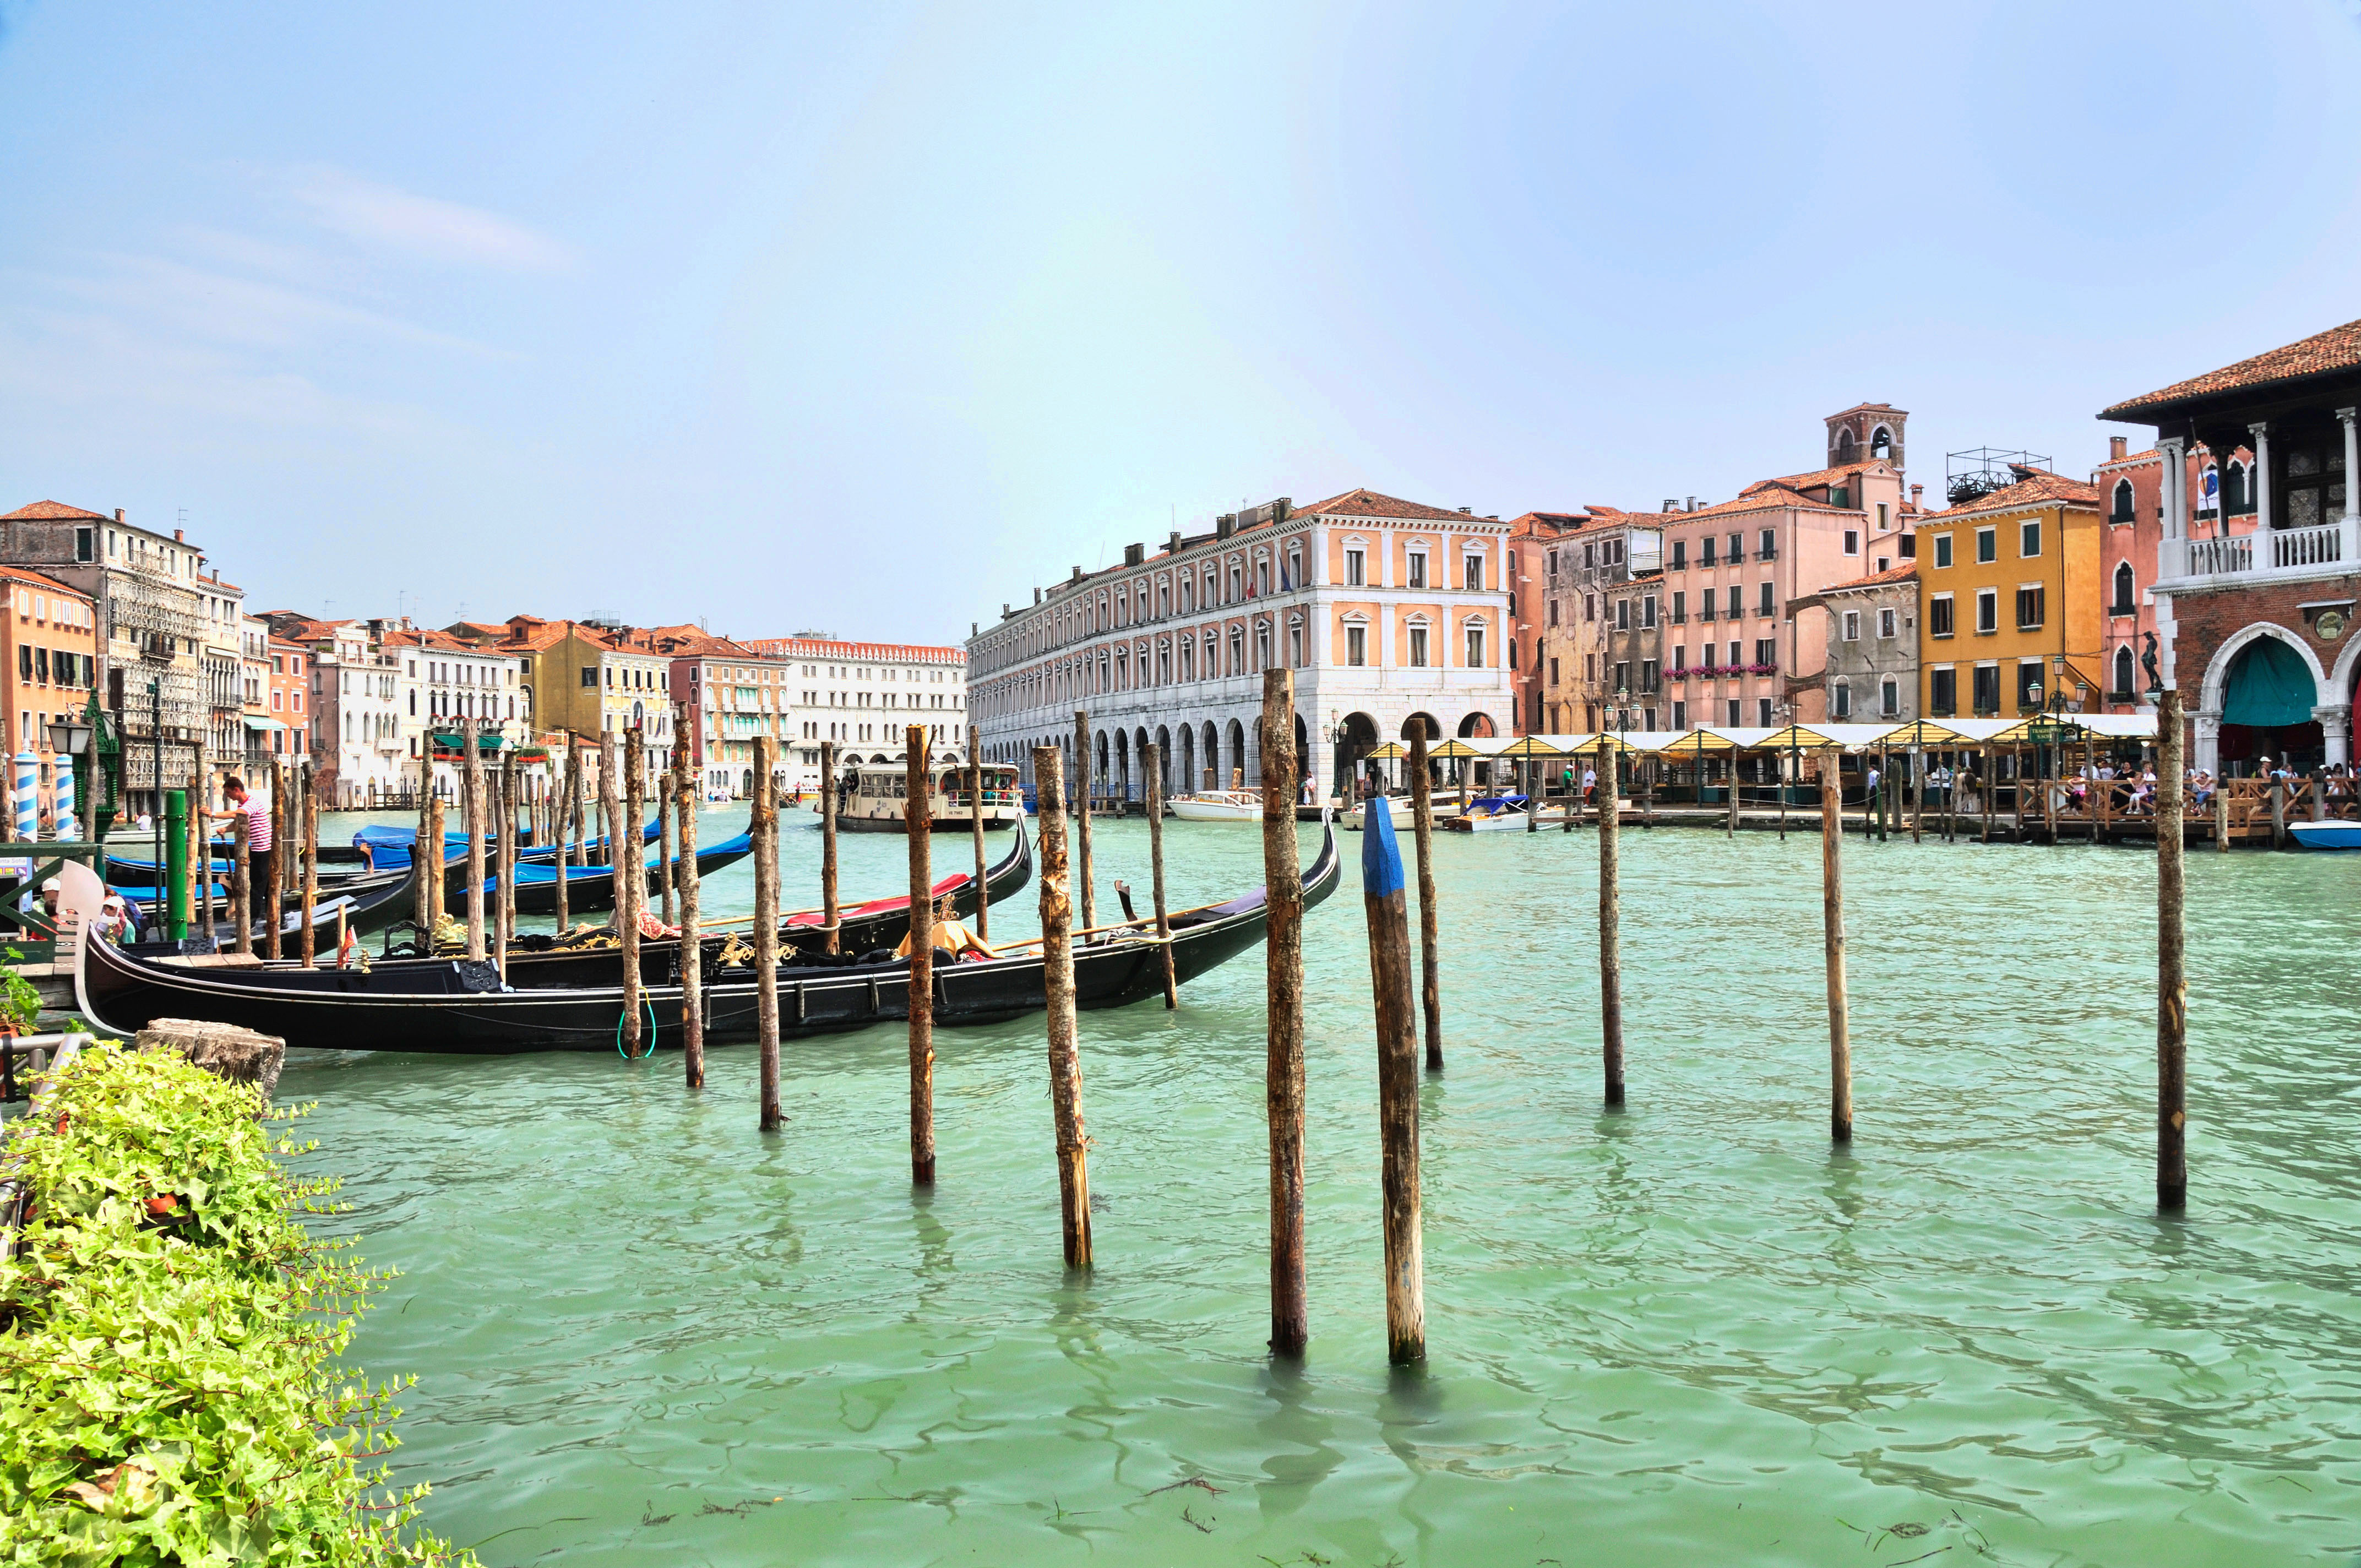 Luxury Hotels In Venice Italy On The Grand C Newatvs Info